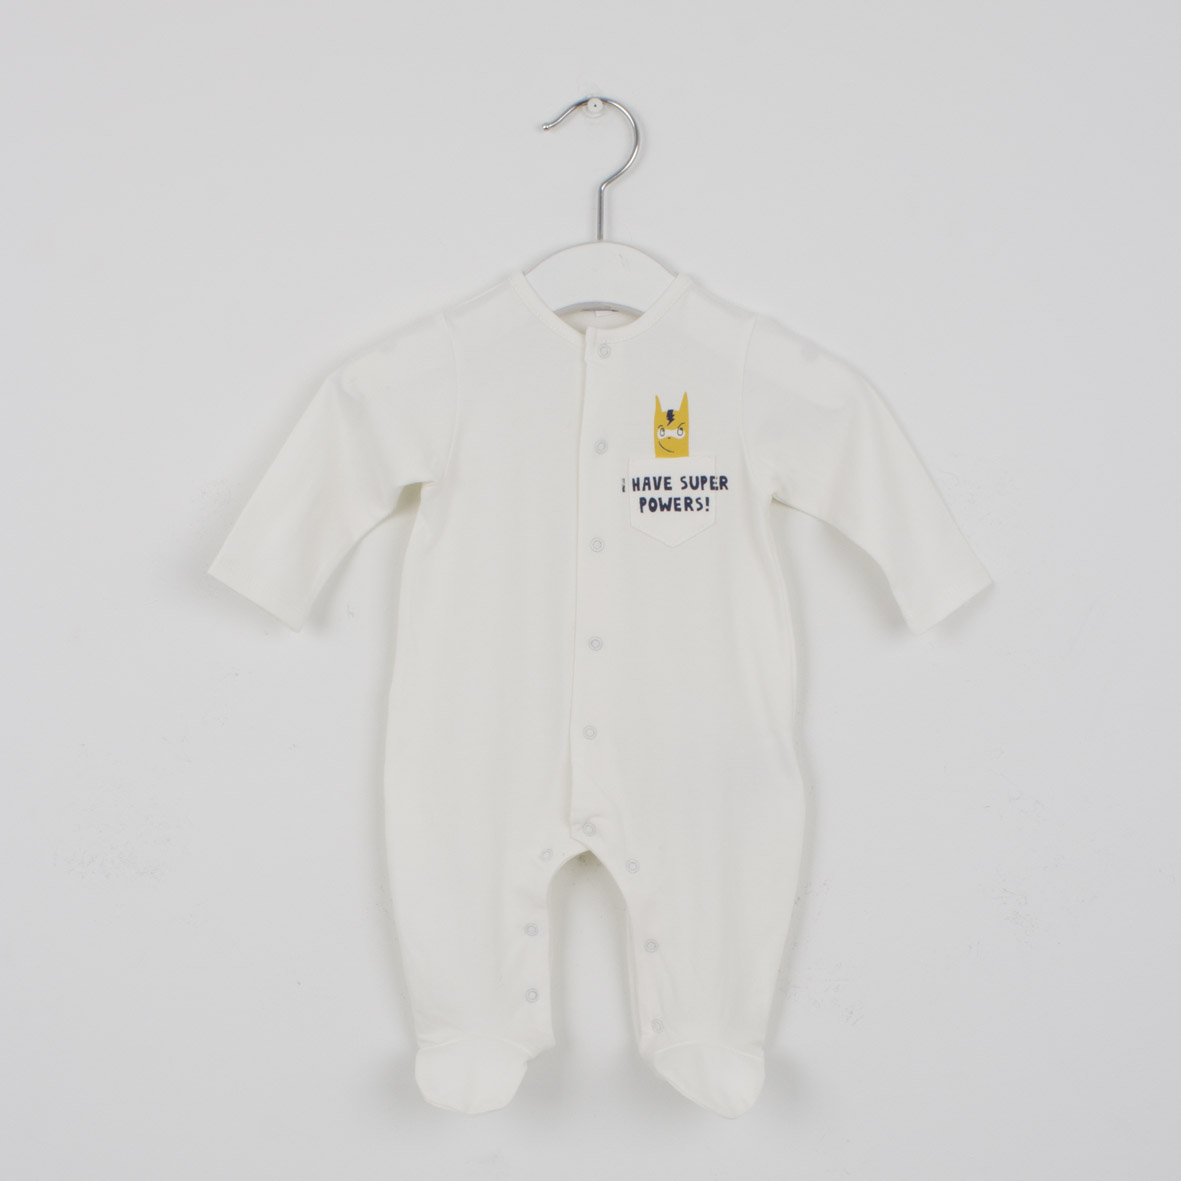 Babygrow super powers